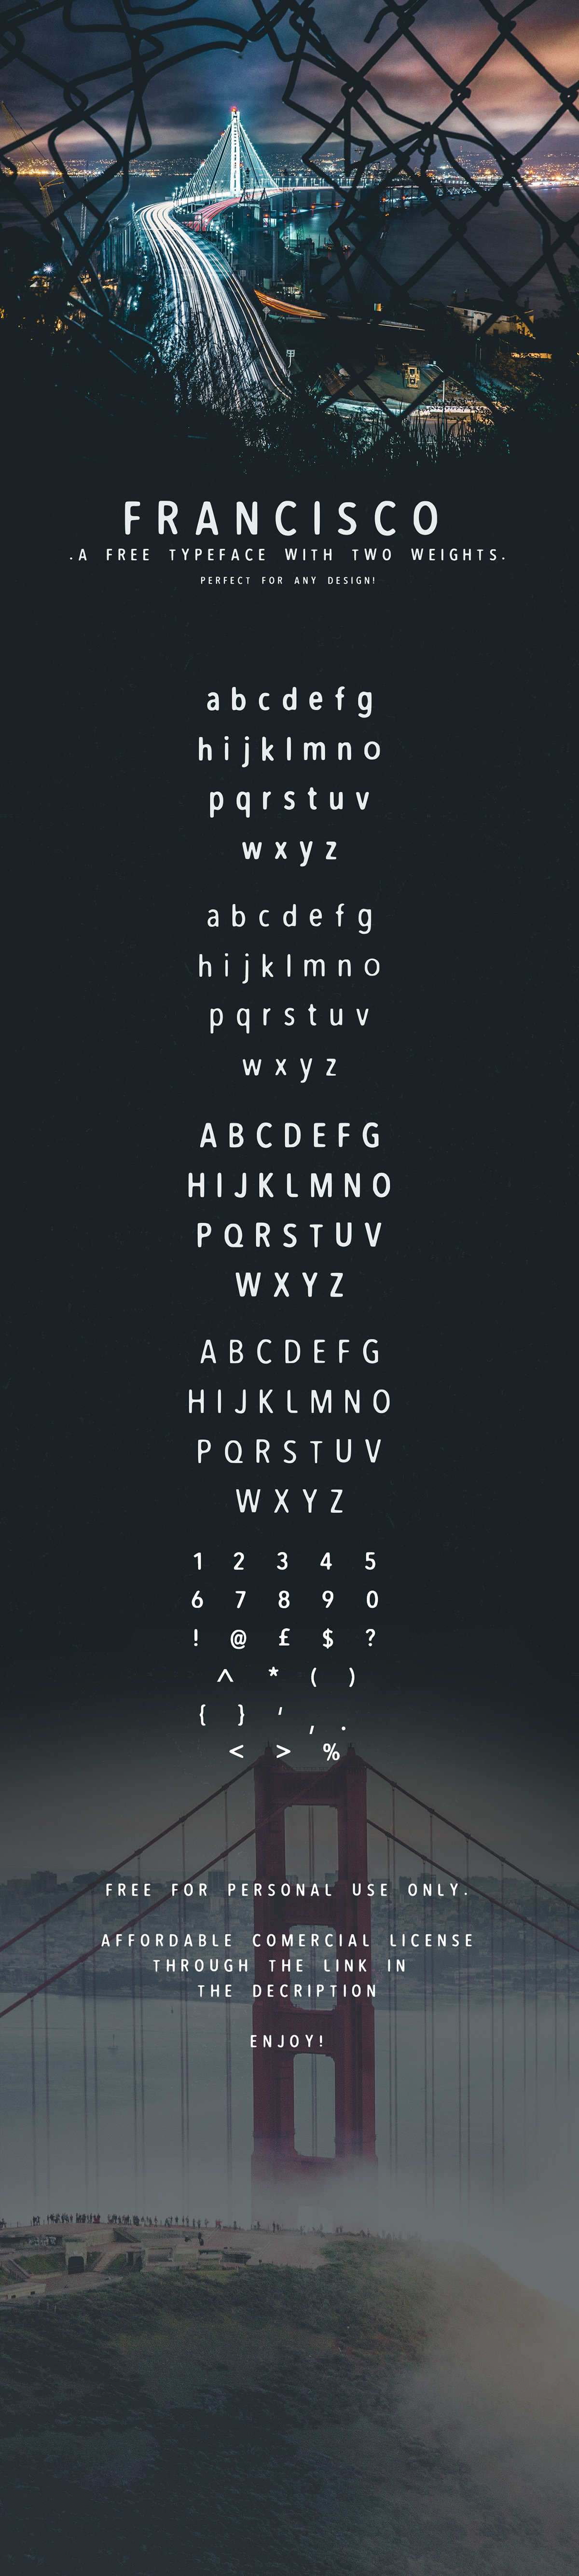 Free font font free Typeface free download download abstract texture Logo Design logo poster new San Fancisco usa Illustrator